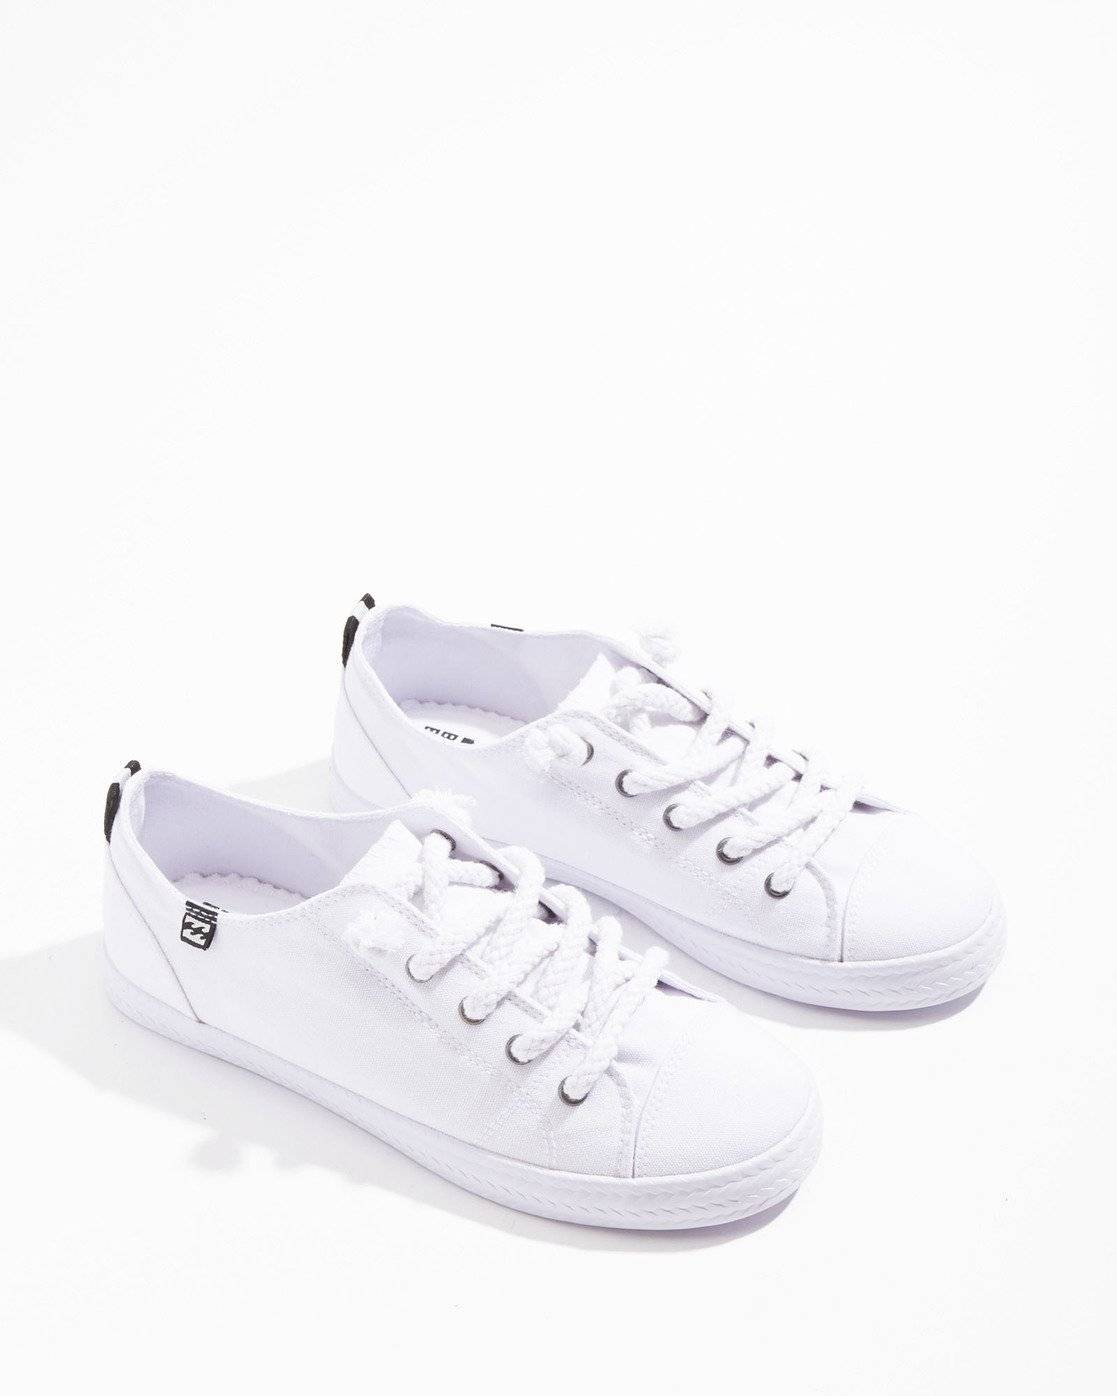 Billabong Marina Canvas Shoes  - White - Size: 9